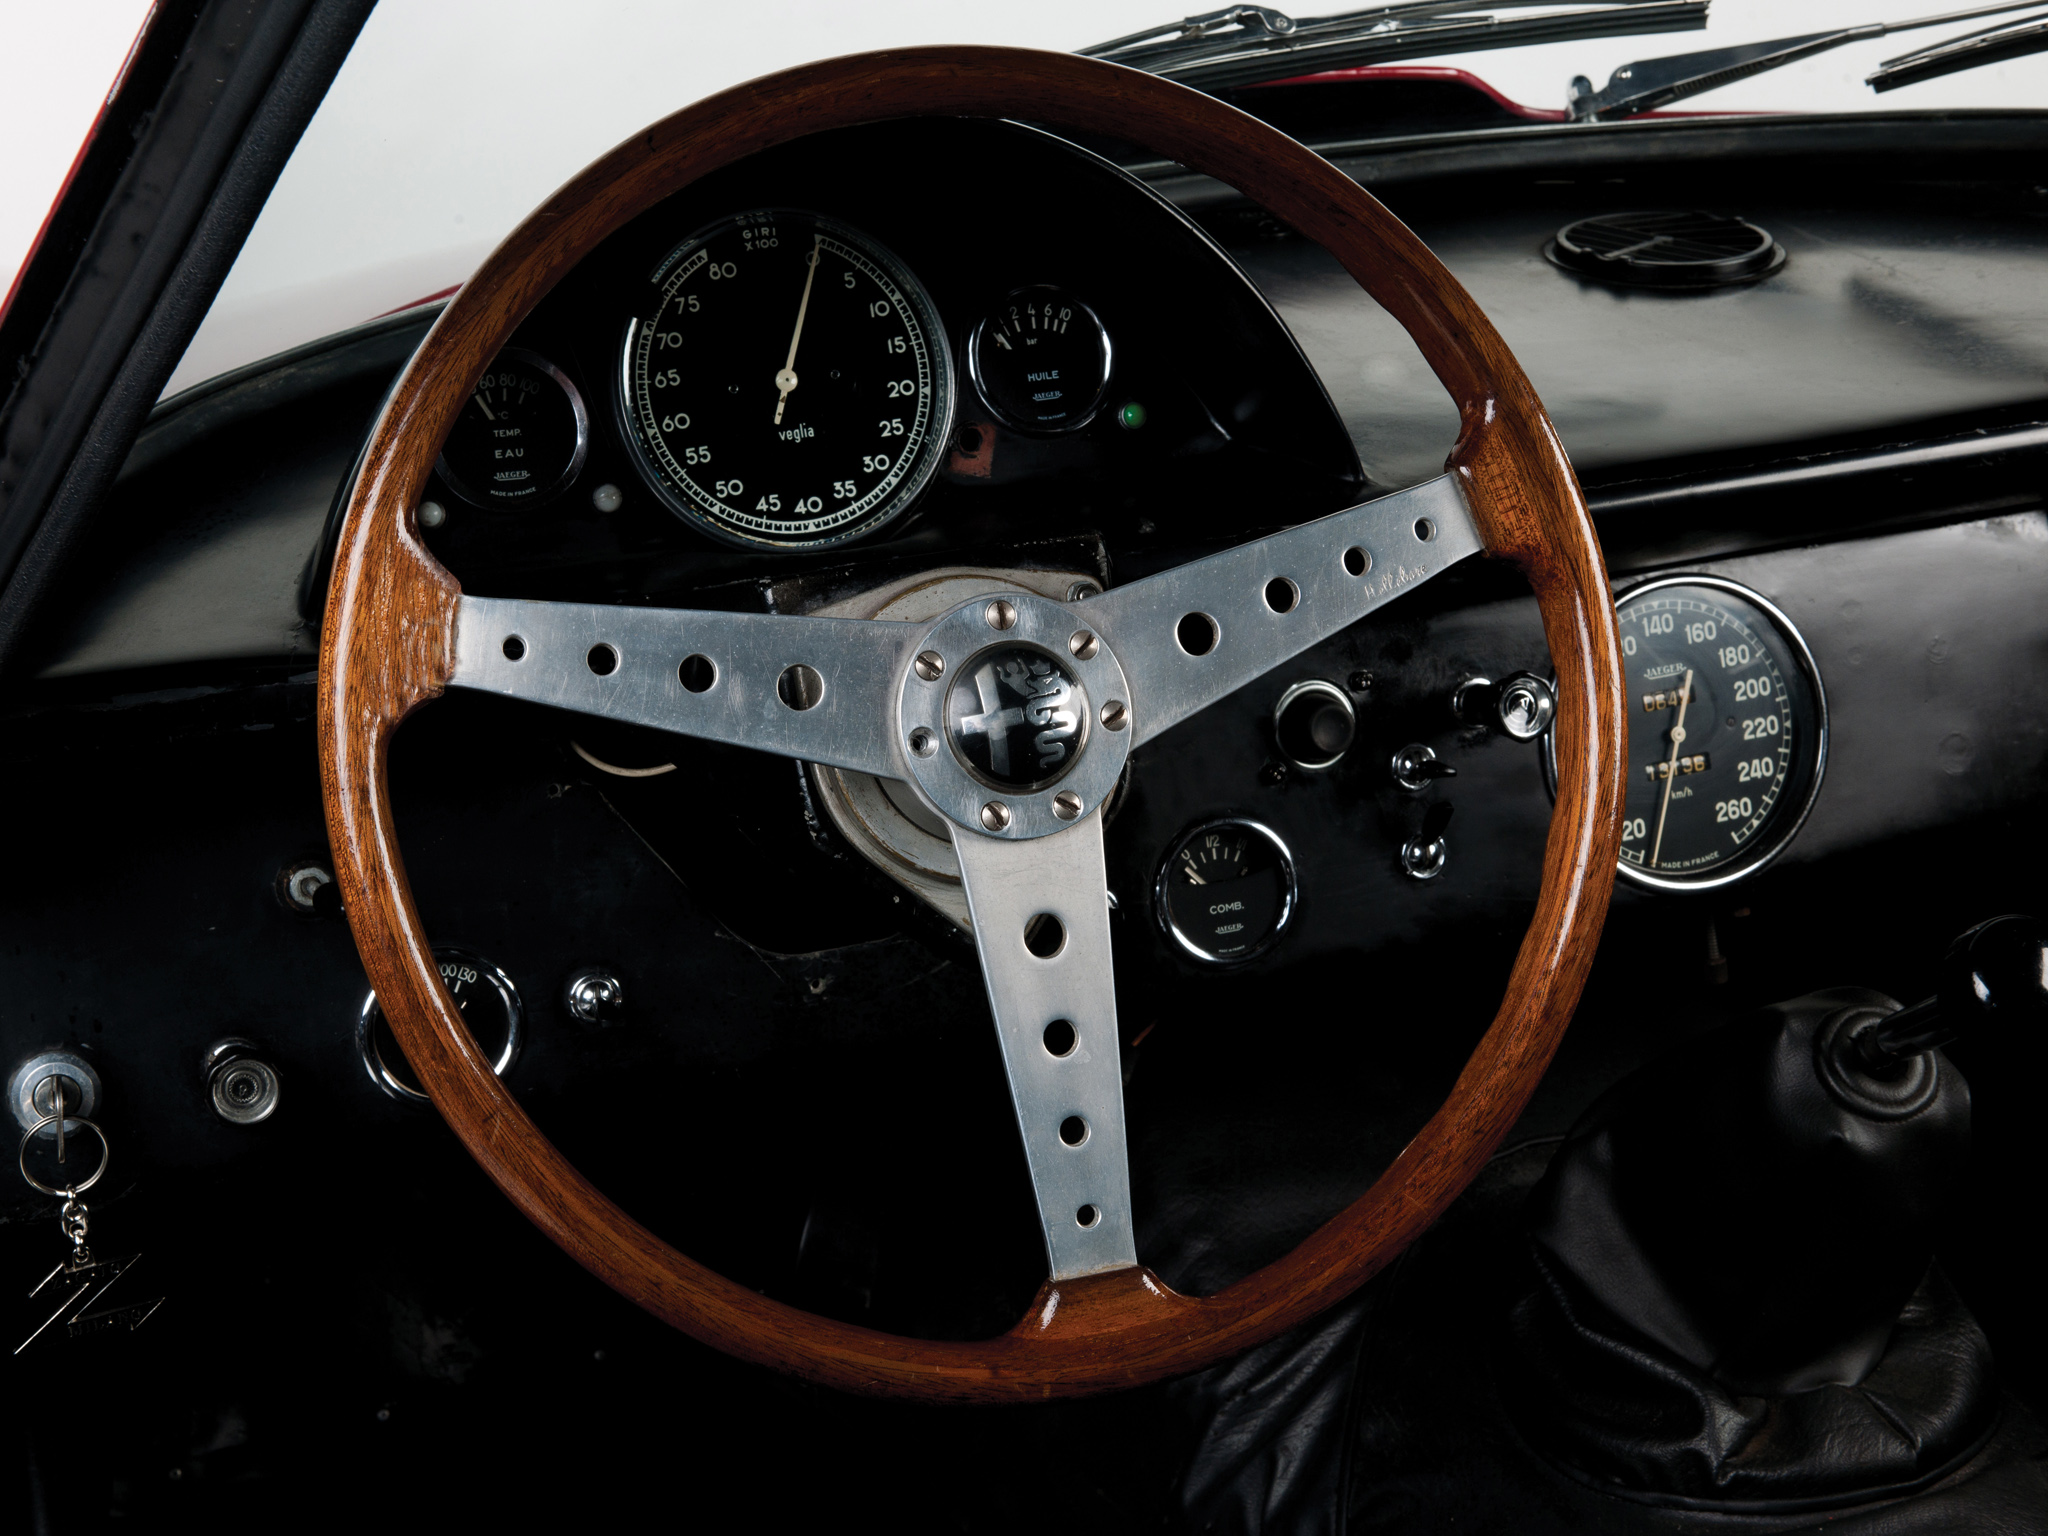 1963 alfa romeo giulia tz 105 rally car race racing classic interior f wallpaper 2048x1536. Black Bedroom Furniture Sets. Home Design Ideas